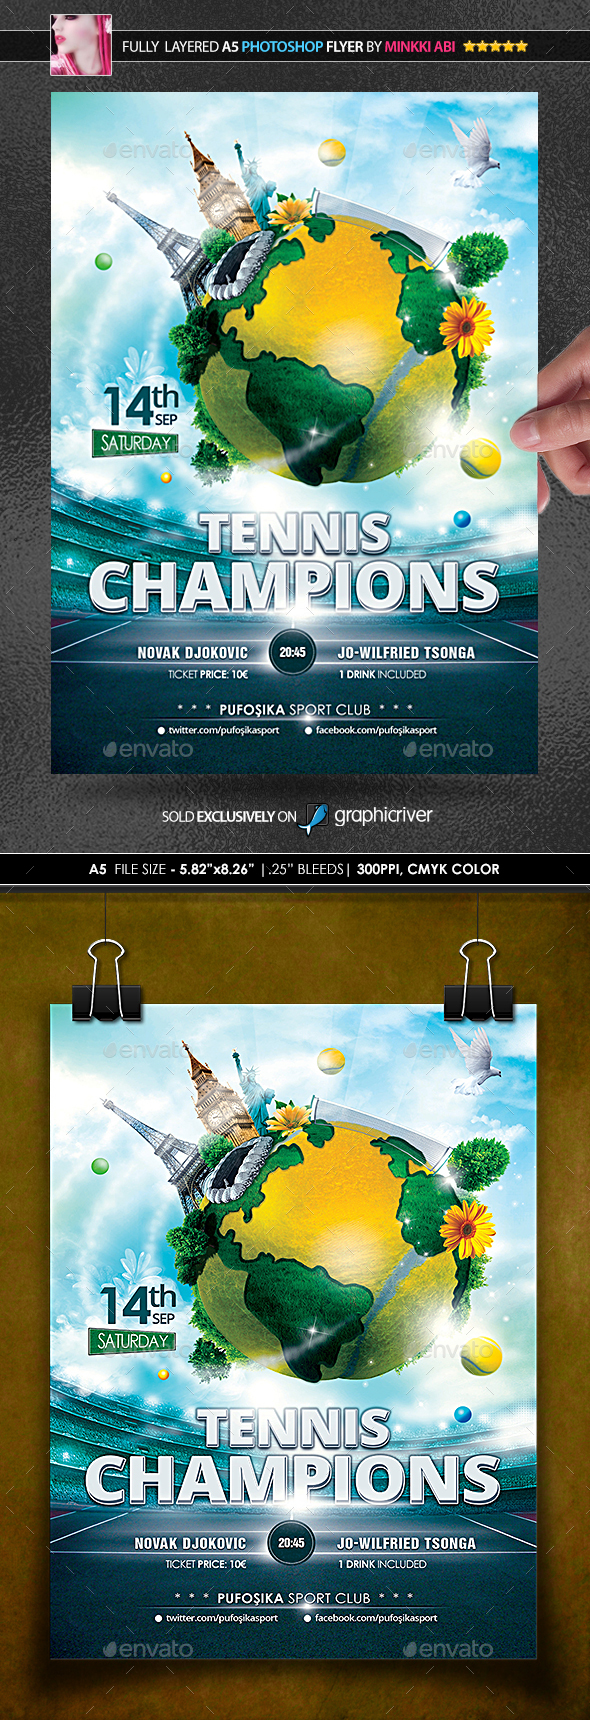 Tennis Champions Poster/Flyer - Sports Events